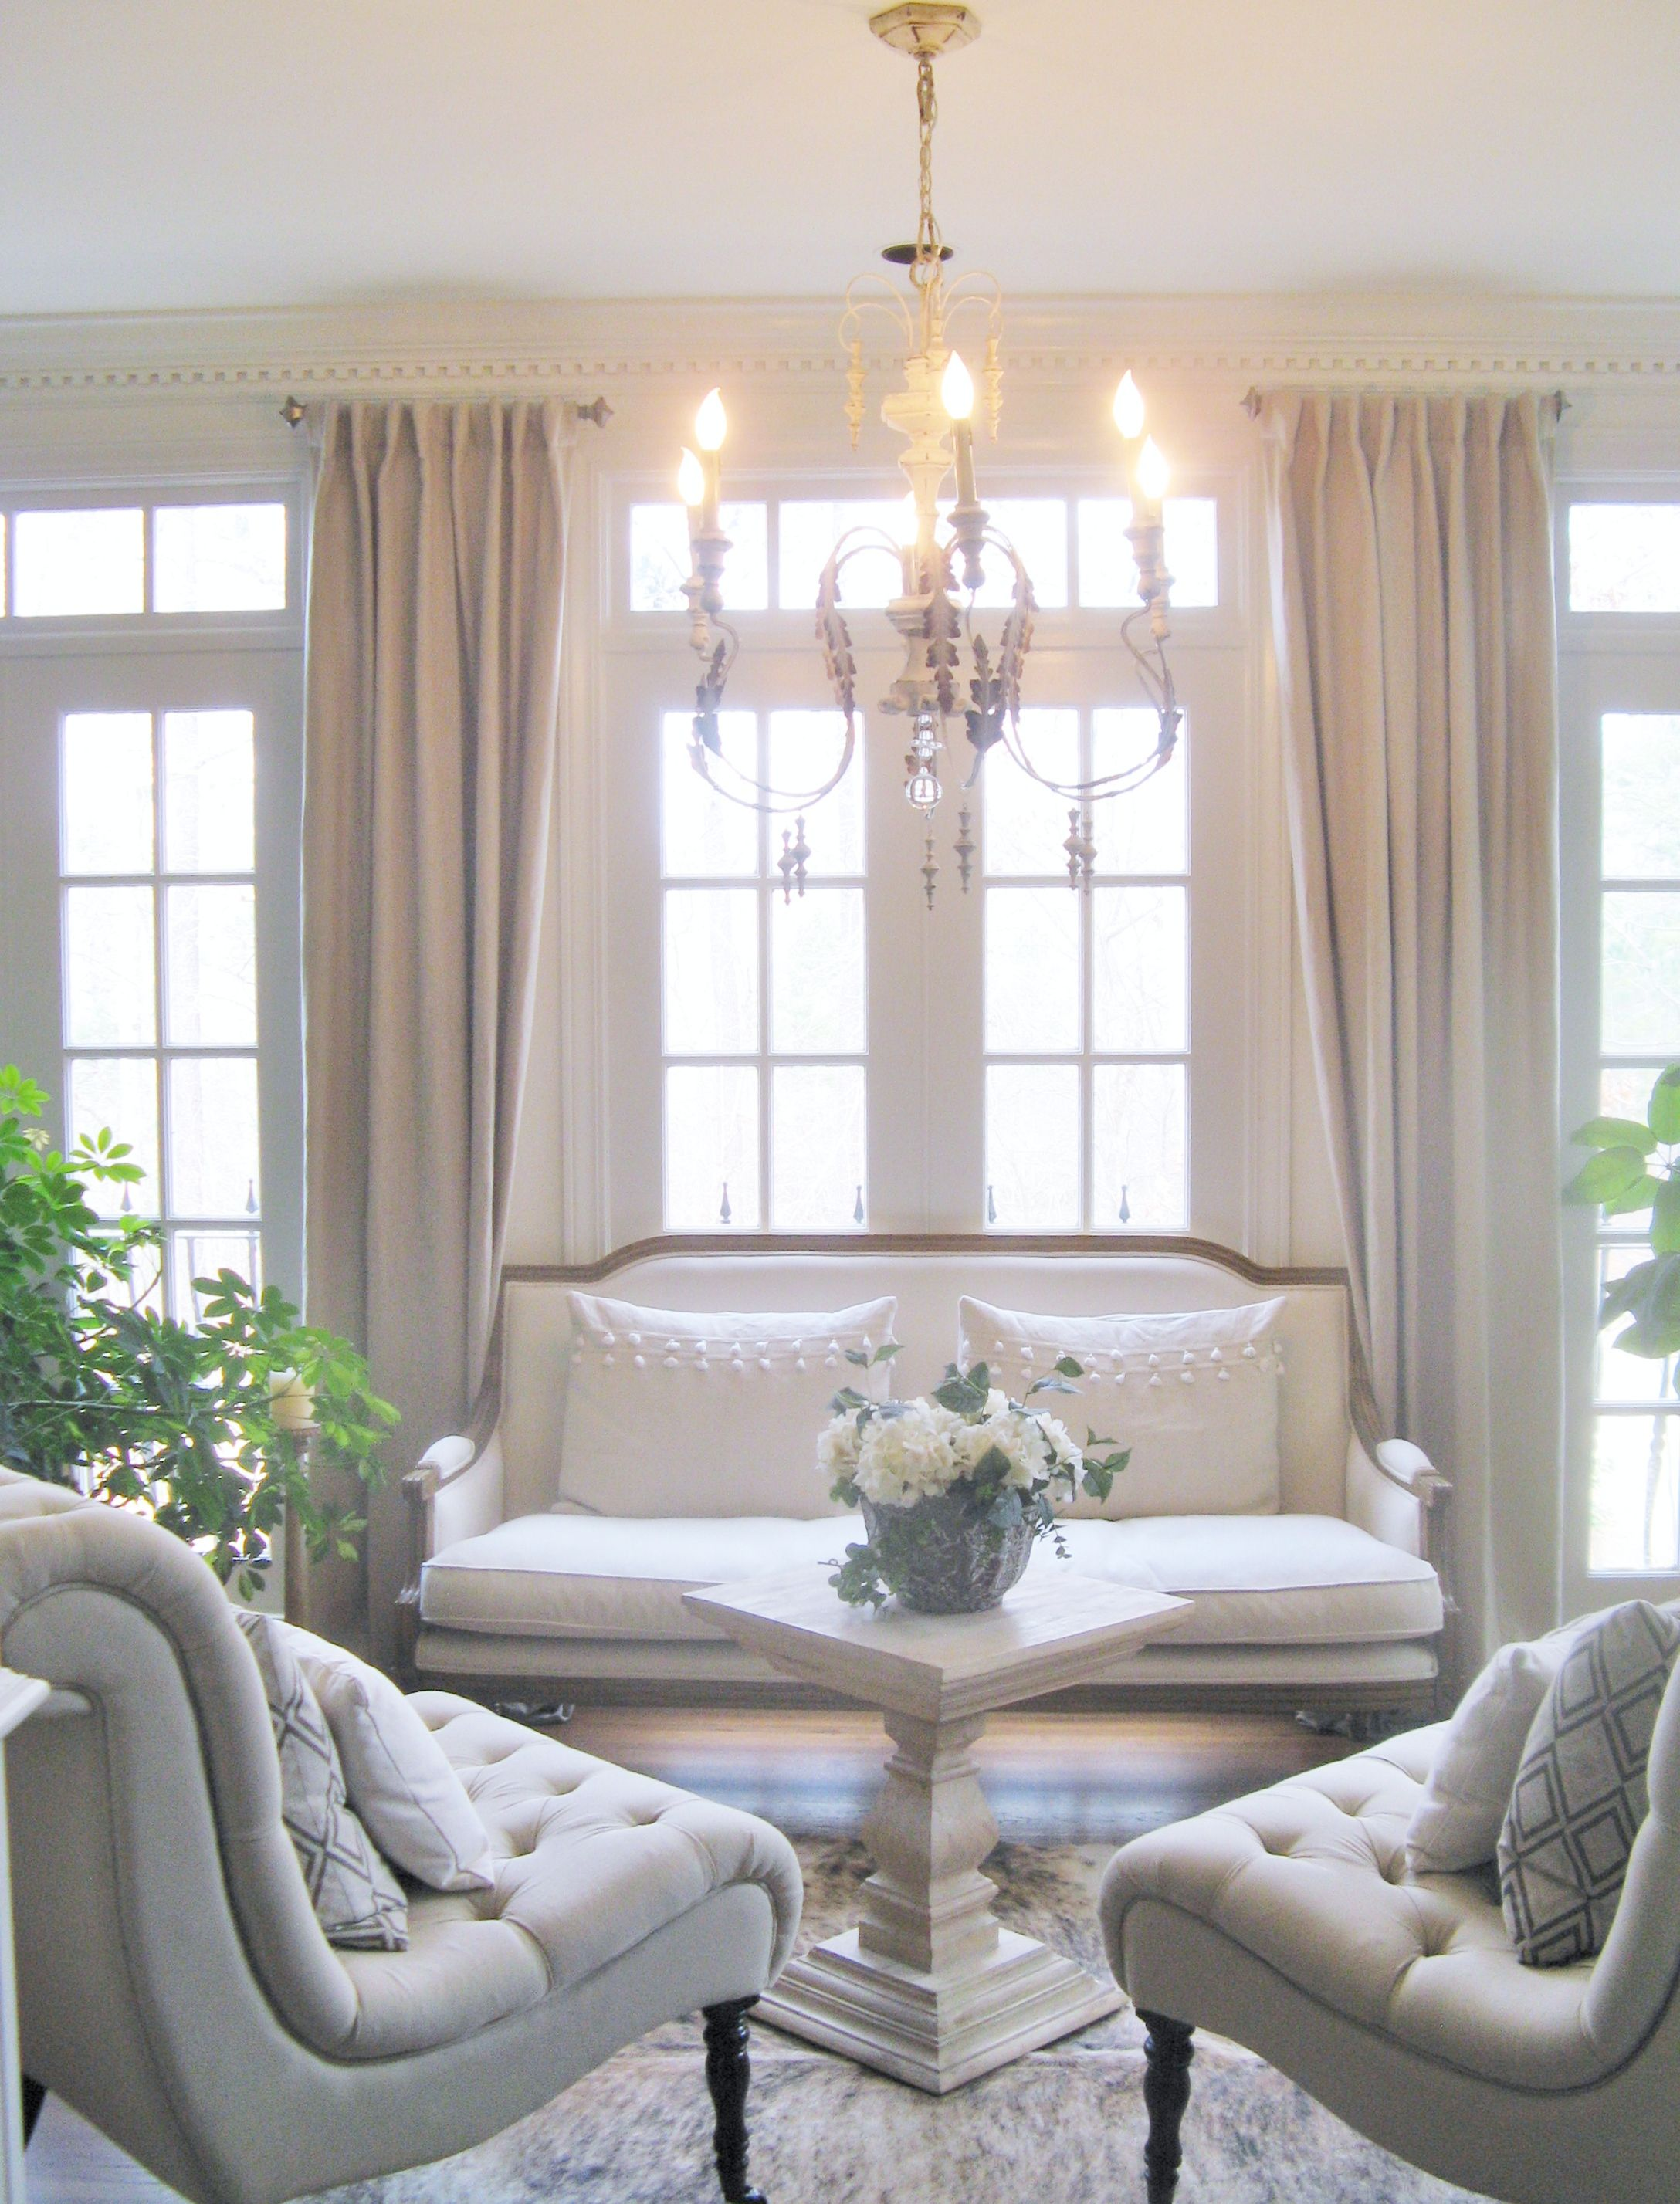 My favorite color combination - blue, taupe and greige. | The ...